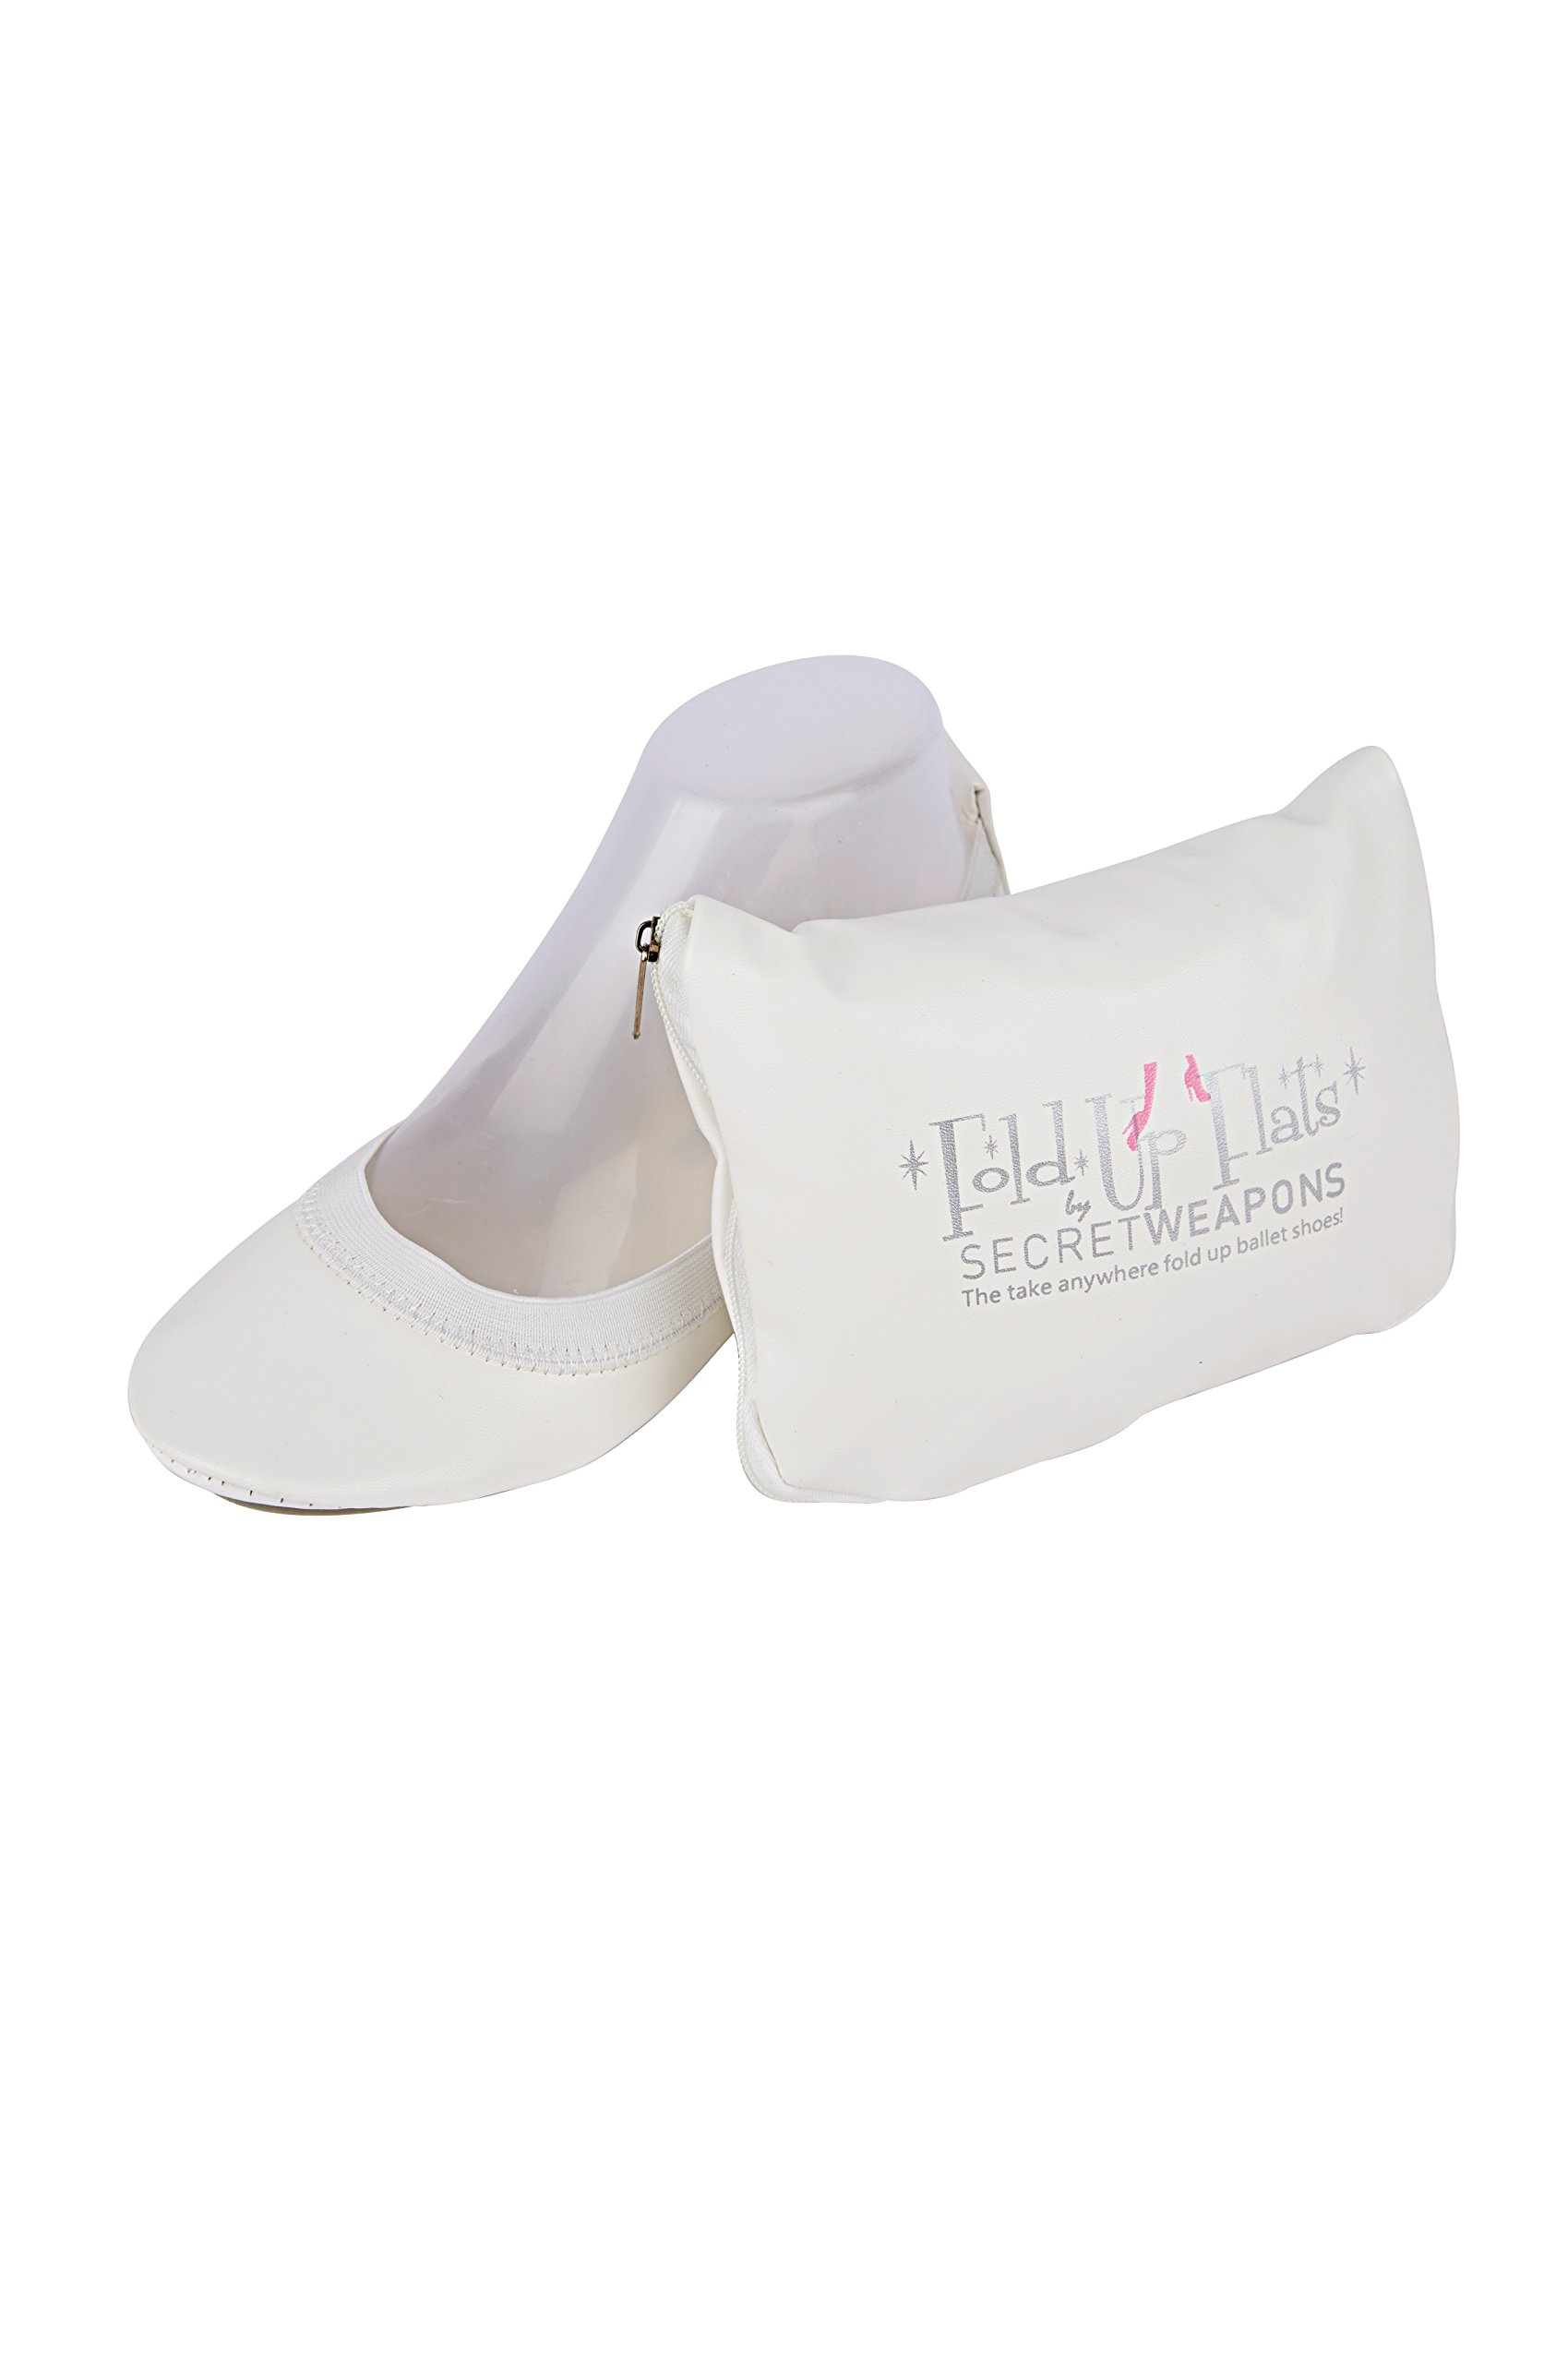 Fold up White Bride Ballet Flats - White Bridal Flats - White Foldable Ballet Flat Shoes with Portable Purse Pack Which Opens to Reveal a Handy Tote Bag! (Large (Size 9-10), White)